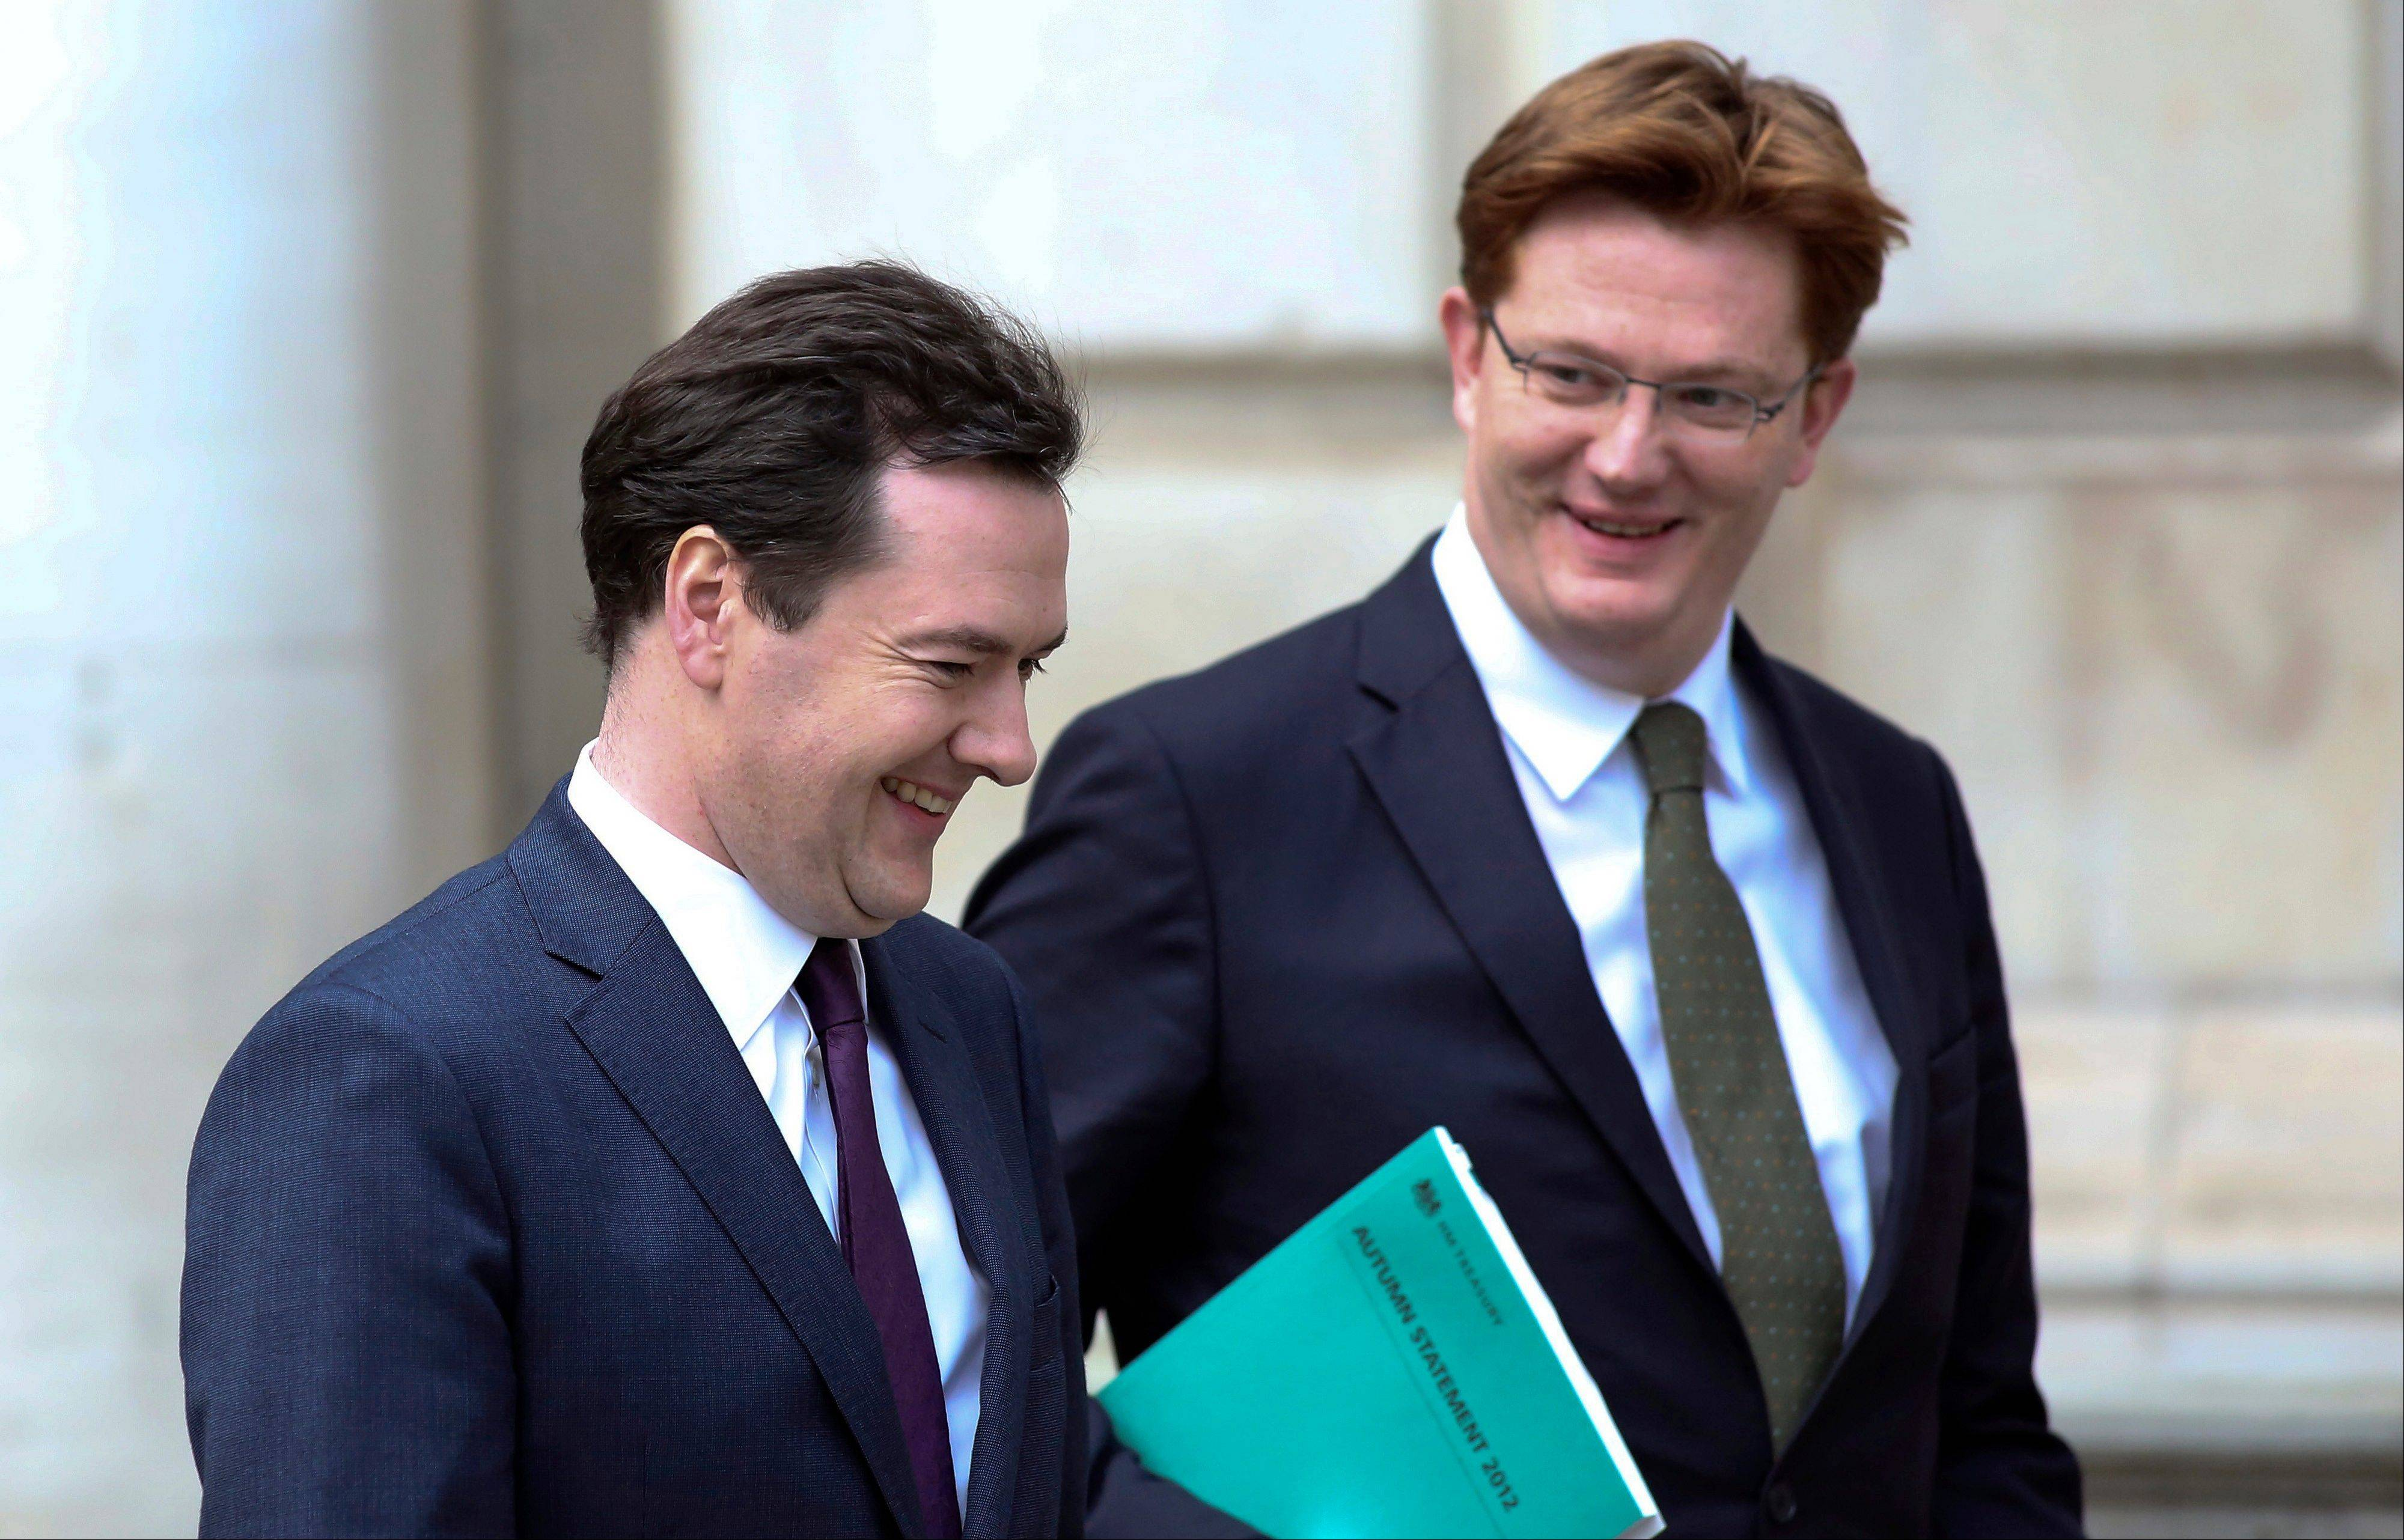 George Osborne, U.K. chancellor of the exchequer, left, reacts with Danny Alexander, U.K. chief secretary to the treasury, as they leave the HM Treasury building for the Houses of Parliament in London, U.K., Wednesday. Osborne faces the prospect of breaching his self-imposed budget rules as an economy struggling to escape recession drives debt higher and erodes his political capital.